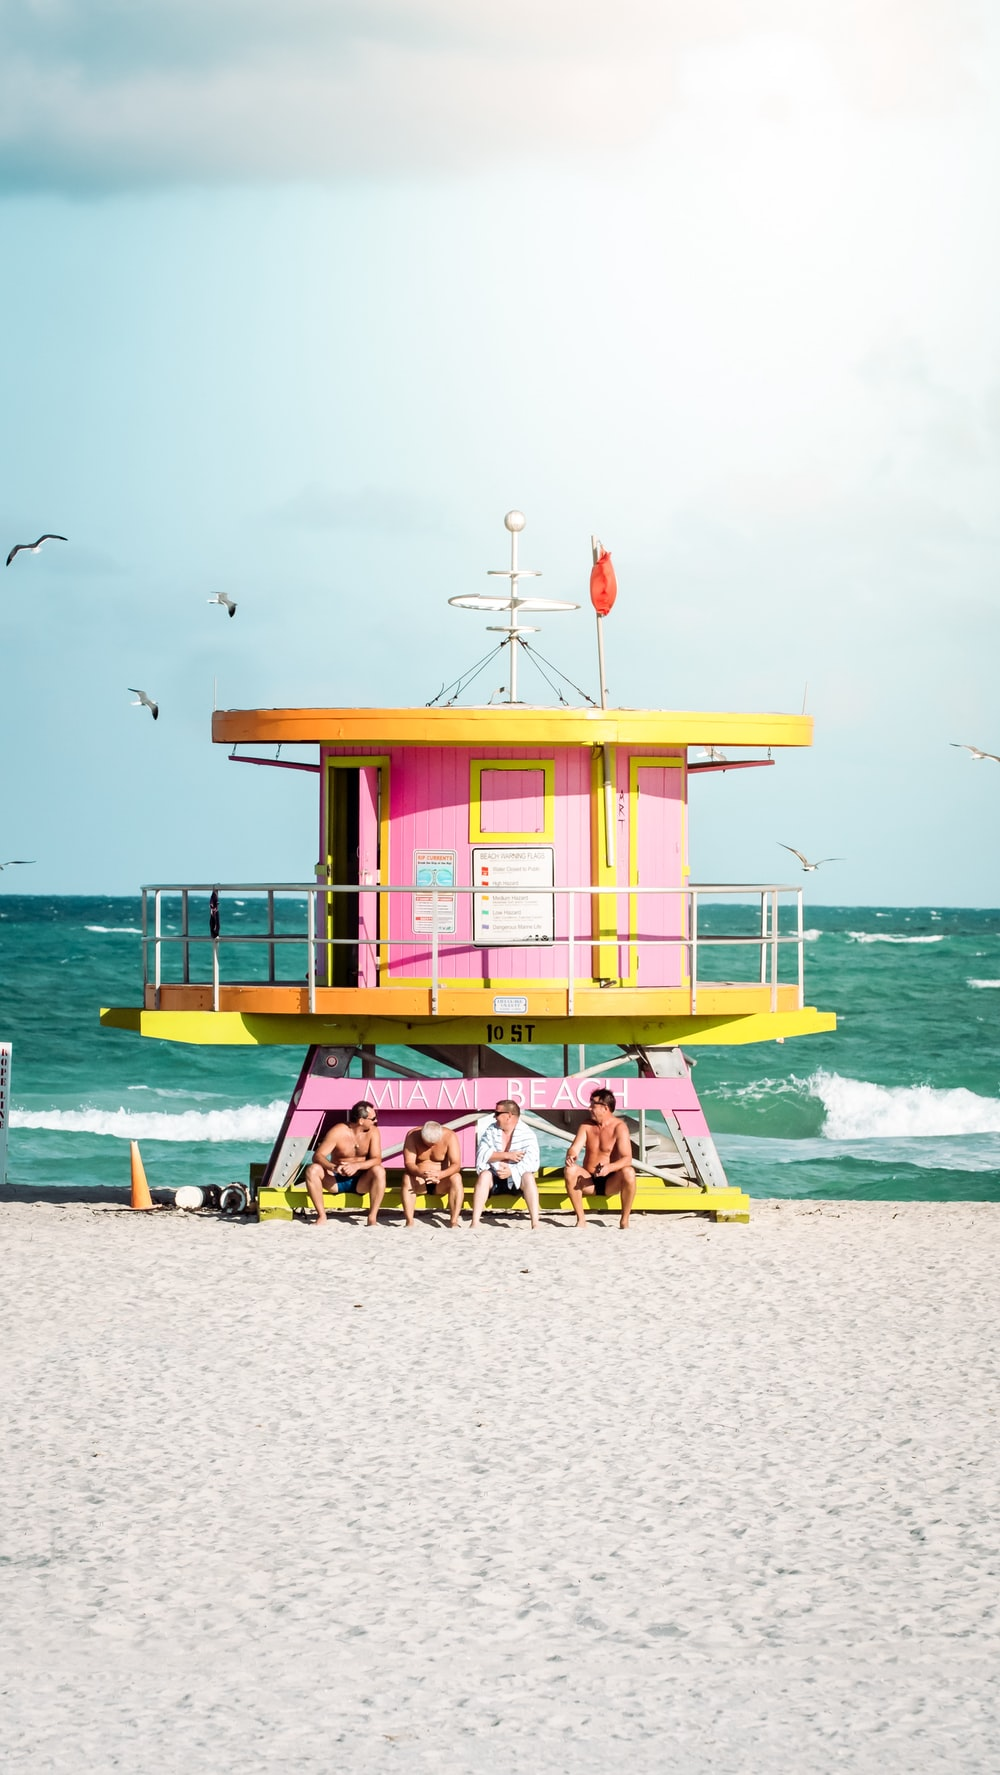 pink and yellow wooden lifeguard house on beach during daytime